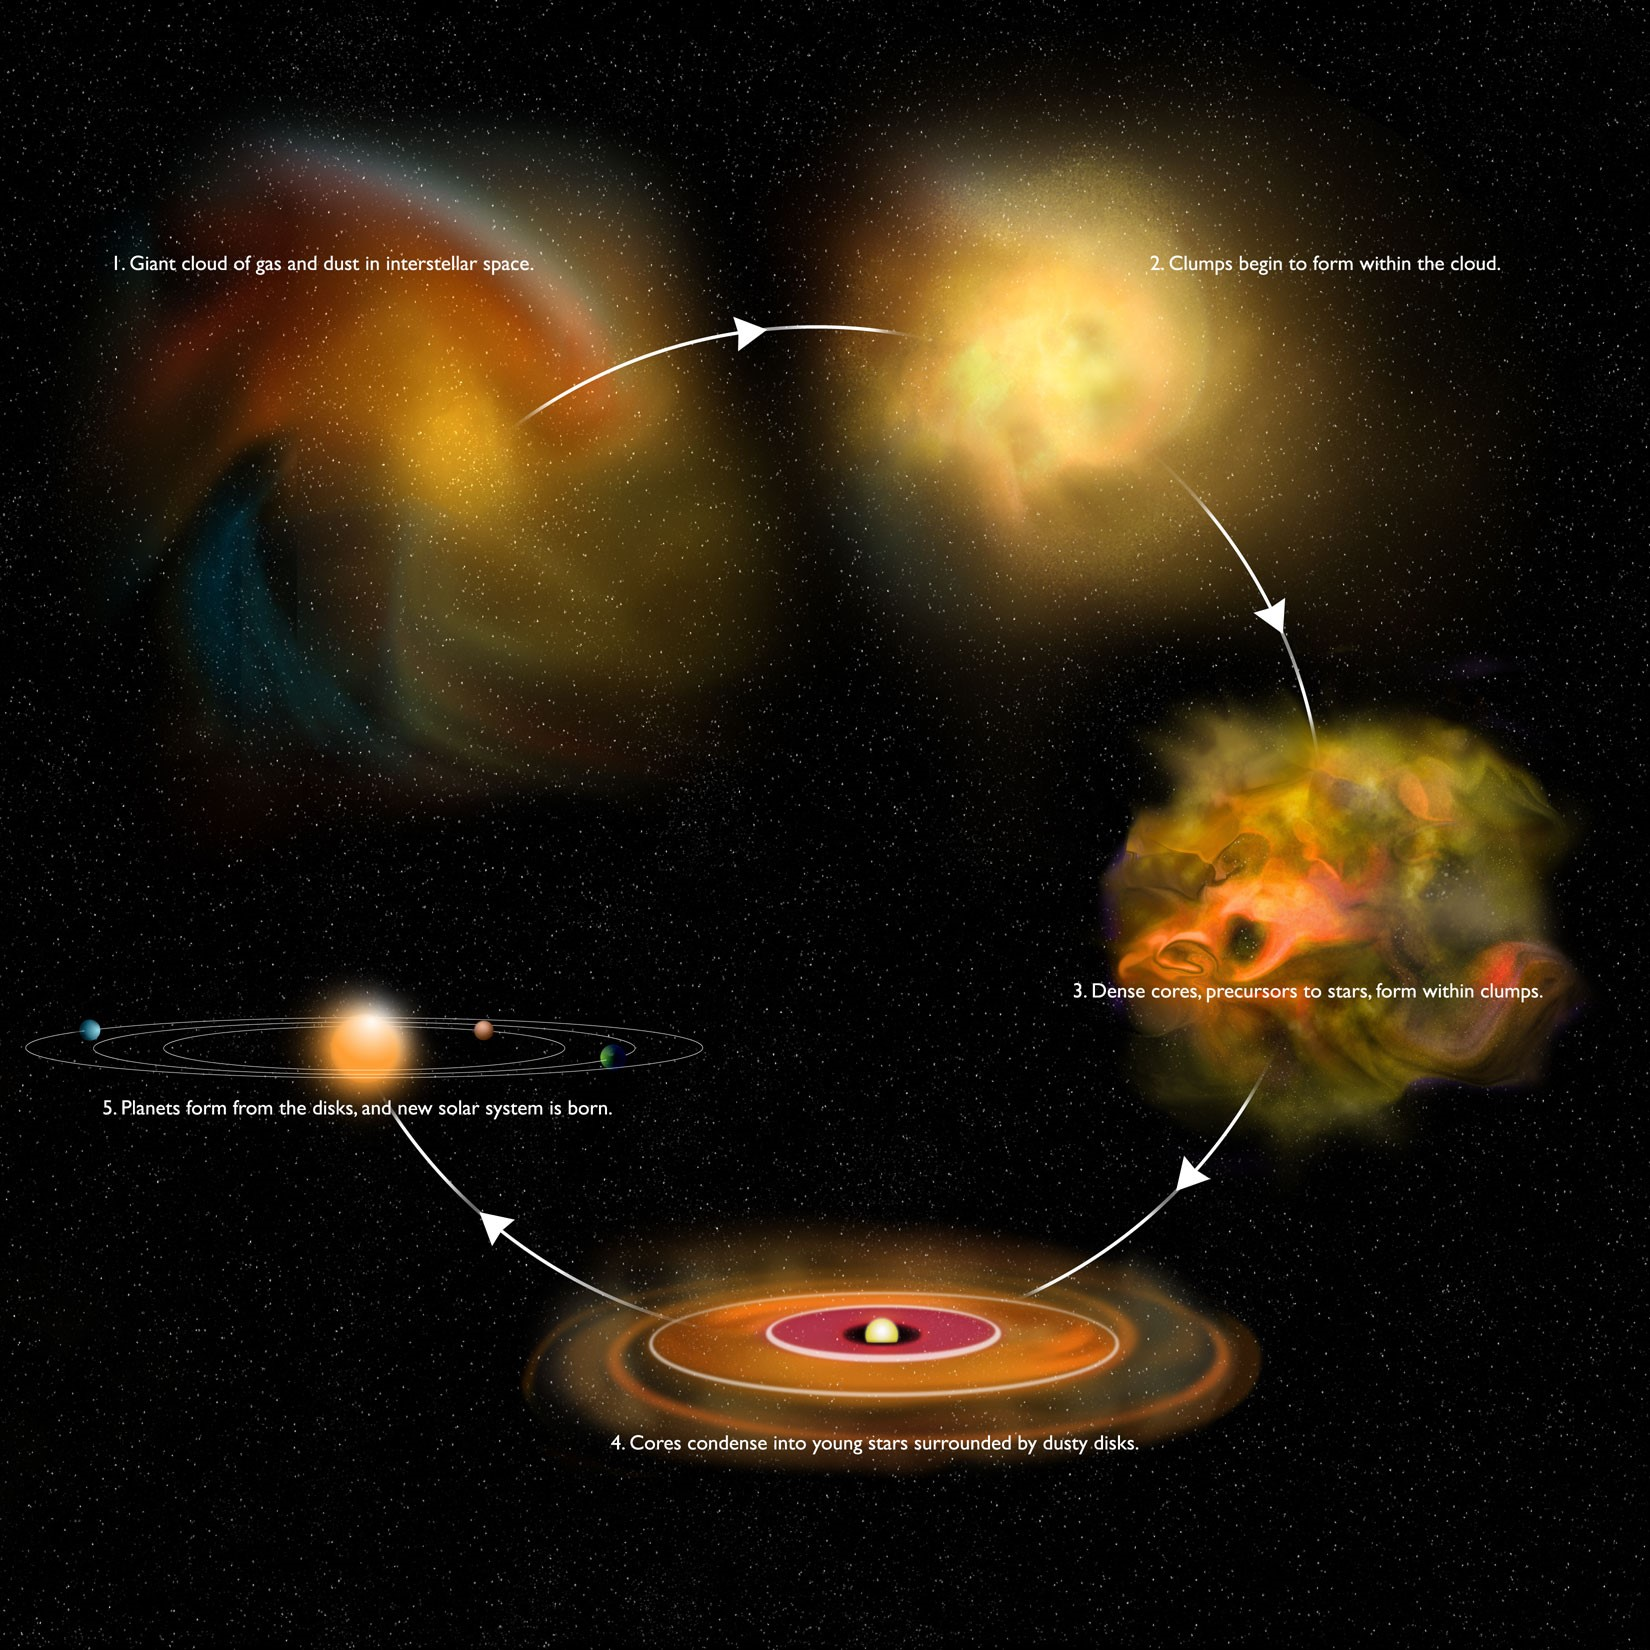 Genesis mission to the sun: Did it confirm the nebular theory of ...